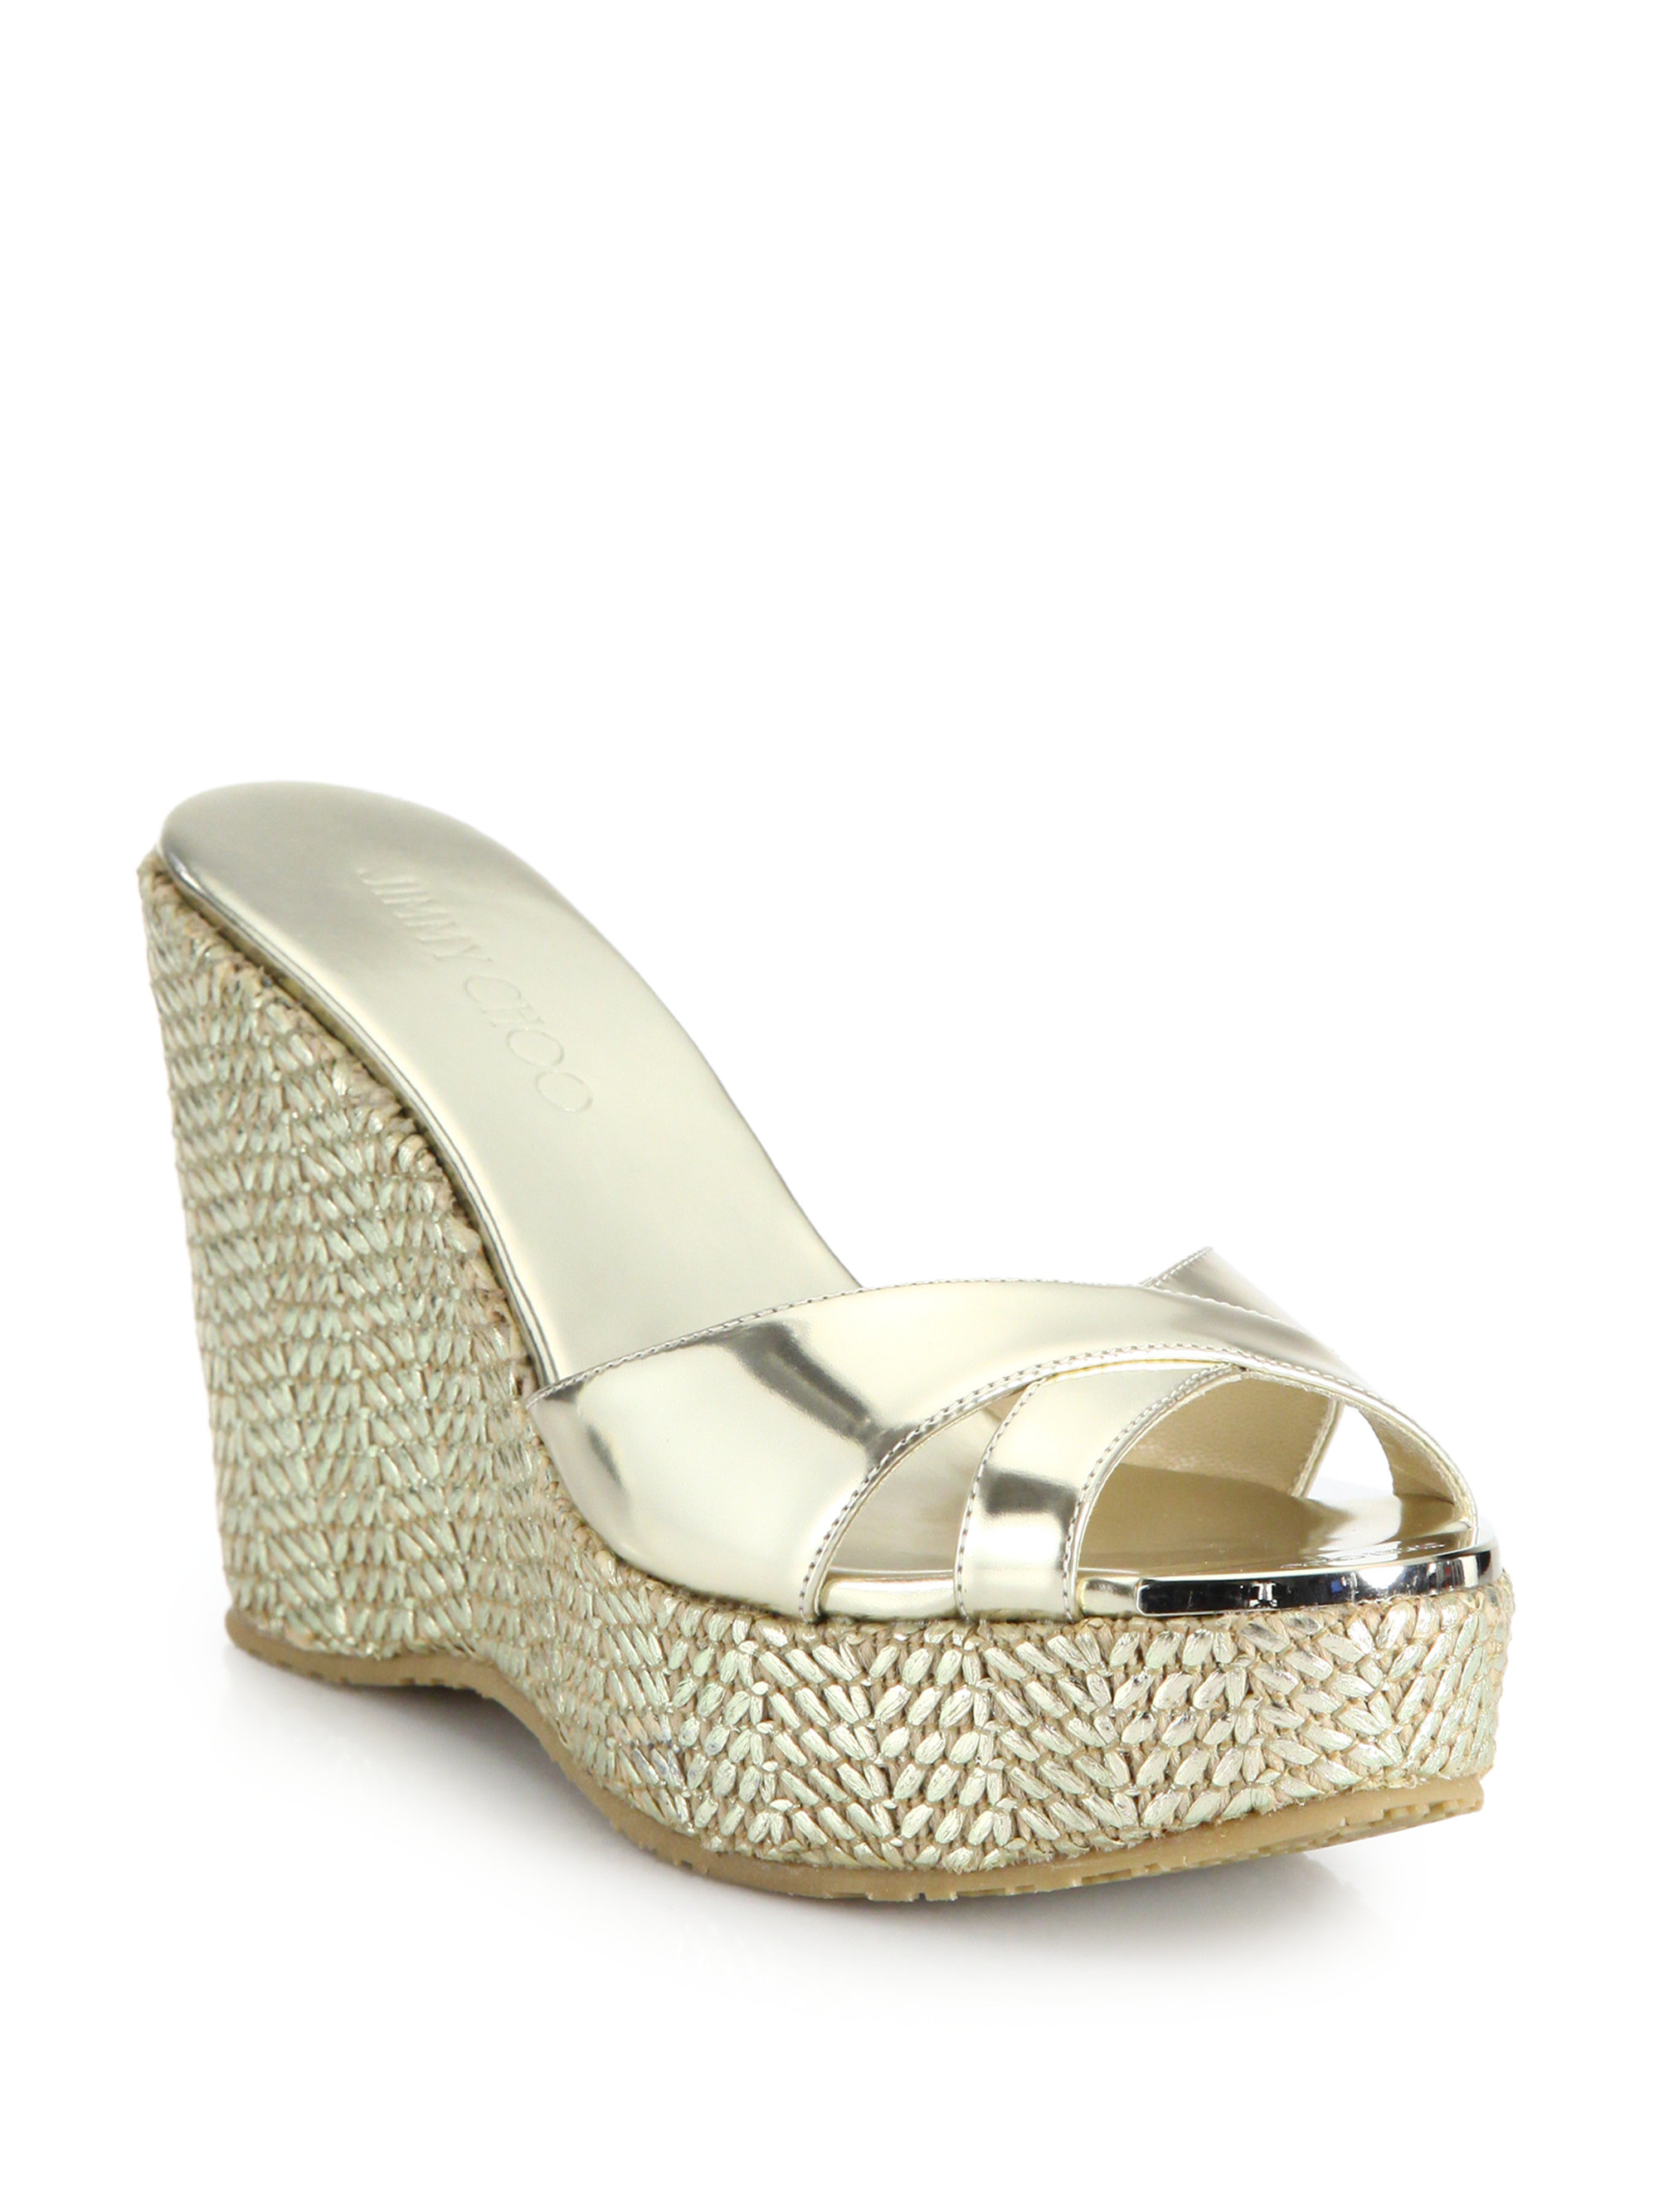 d1516ce0358 Lyst - Jimmy Choo Perfume Metallic Leather Woven Wedge Sandals in ...